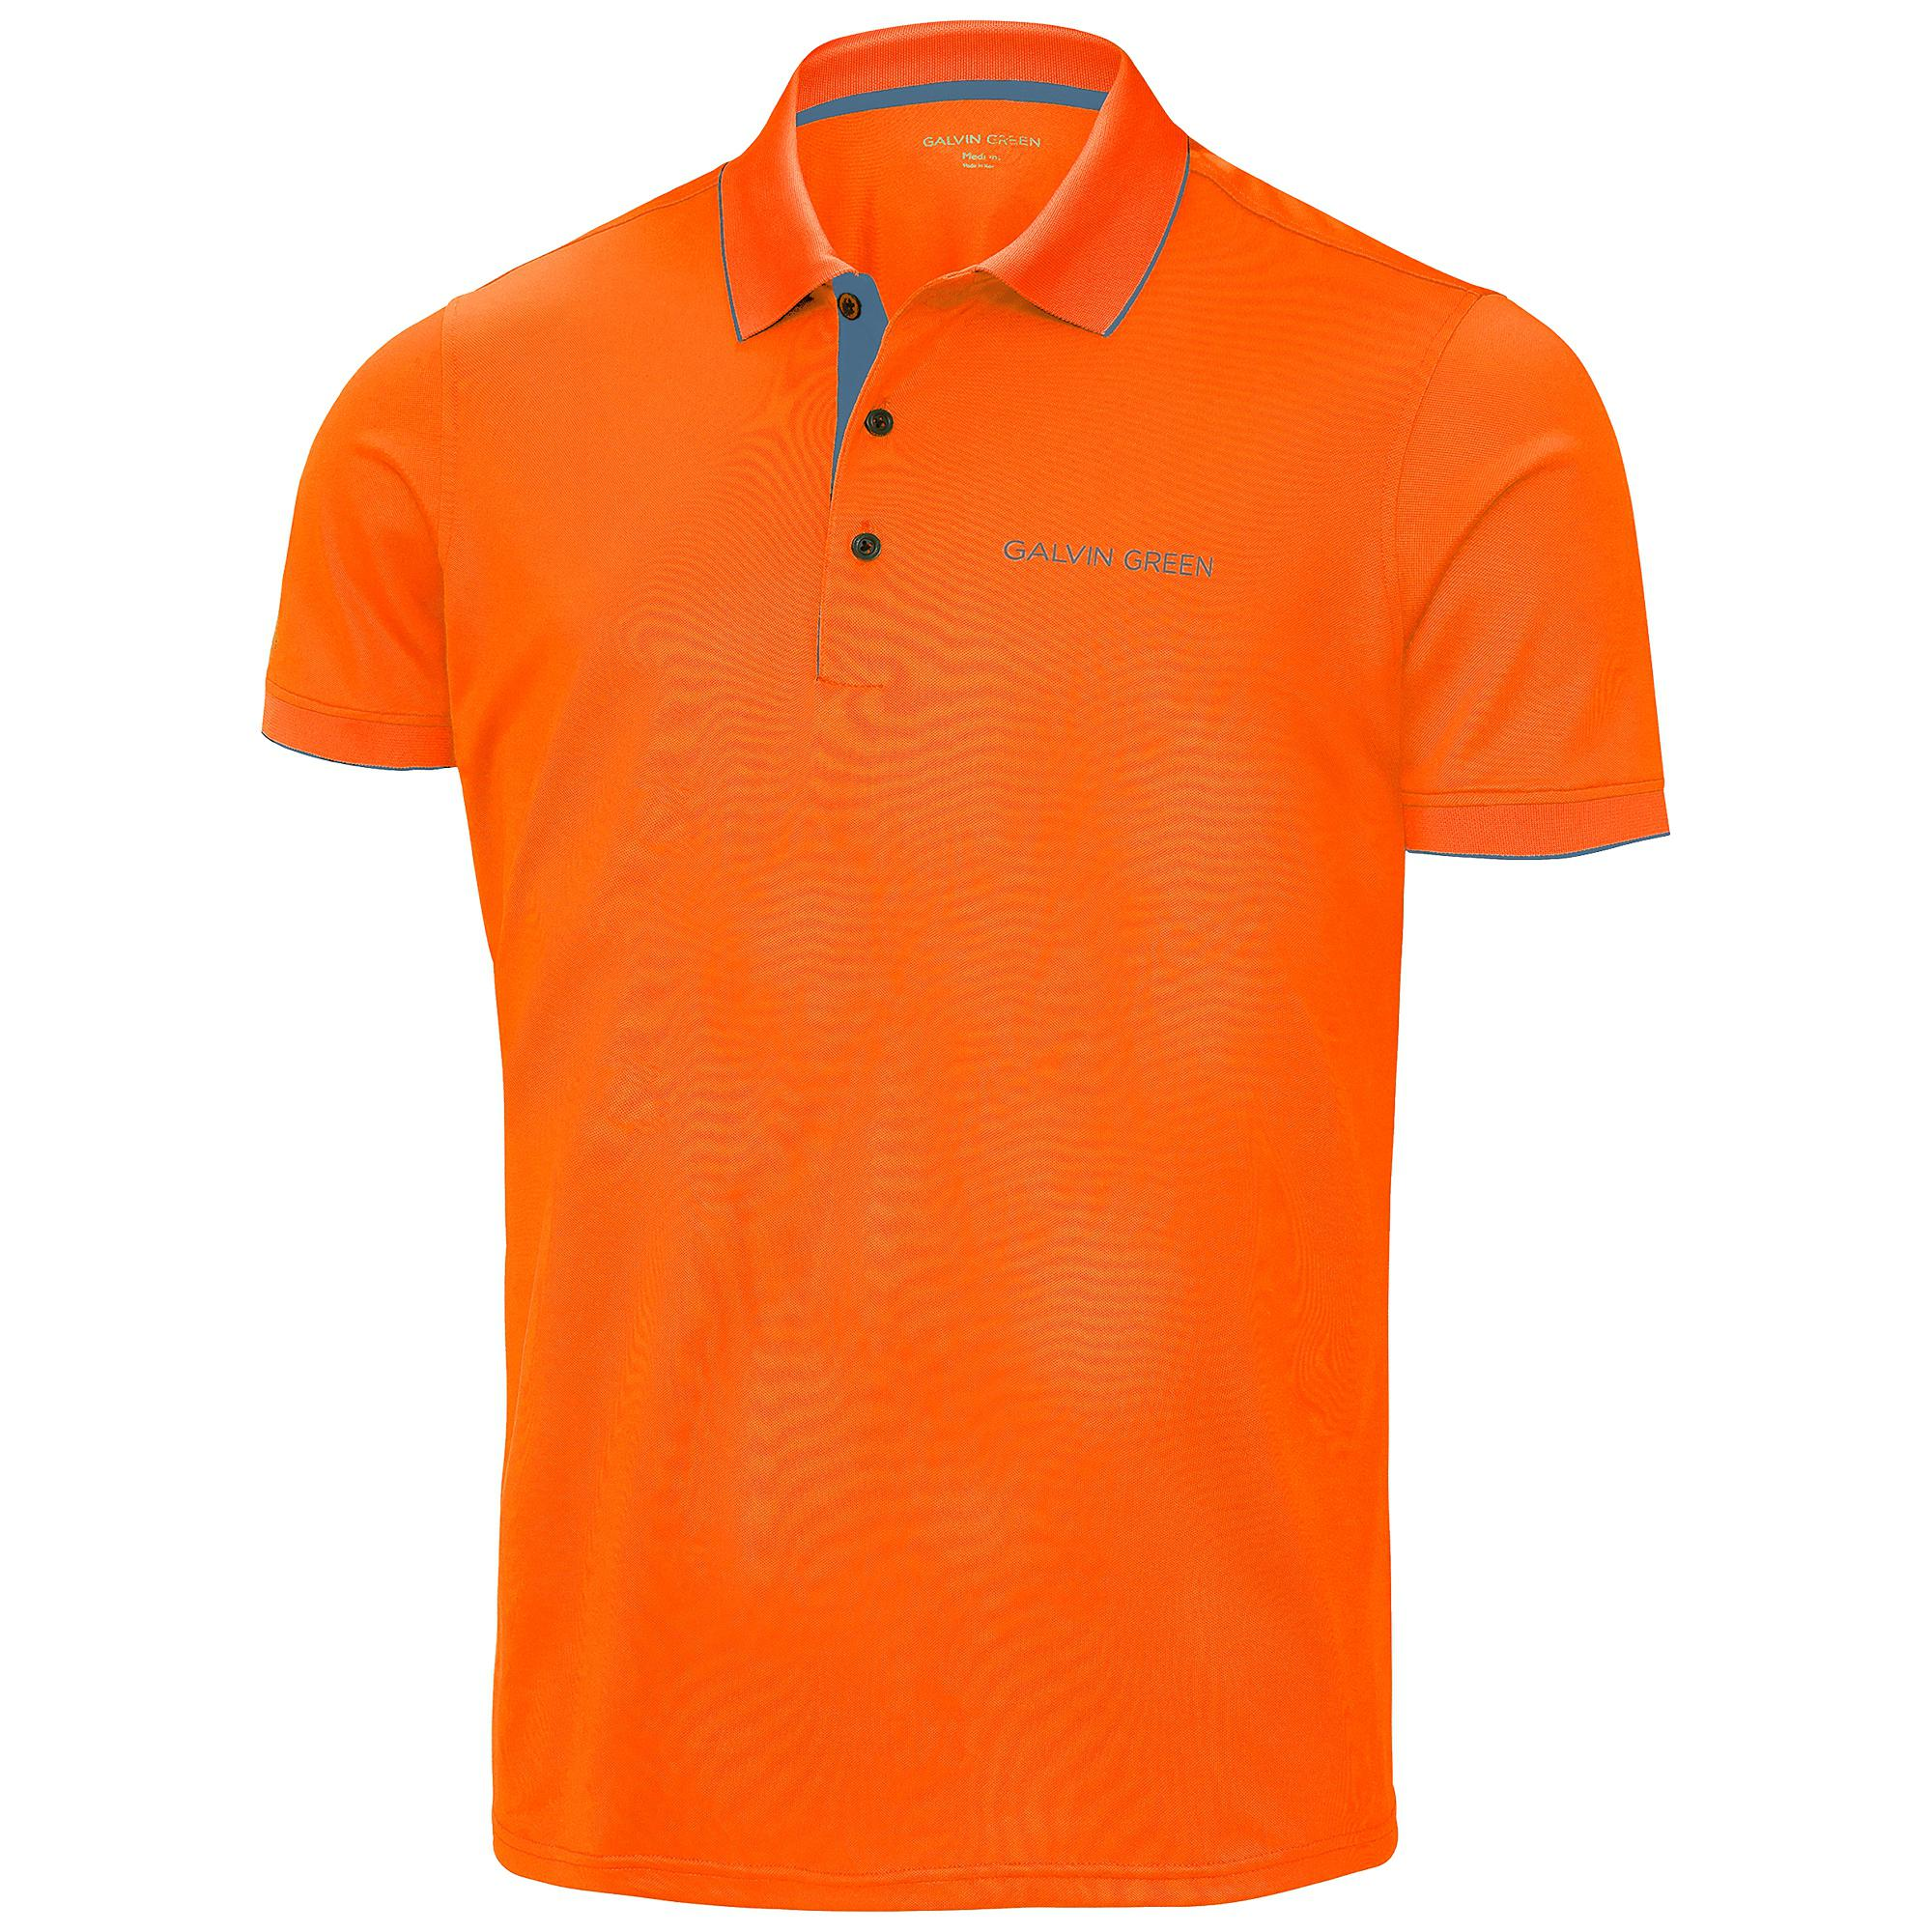 Marty Tour Rusty Orange/Ensign blue